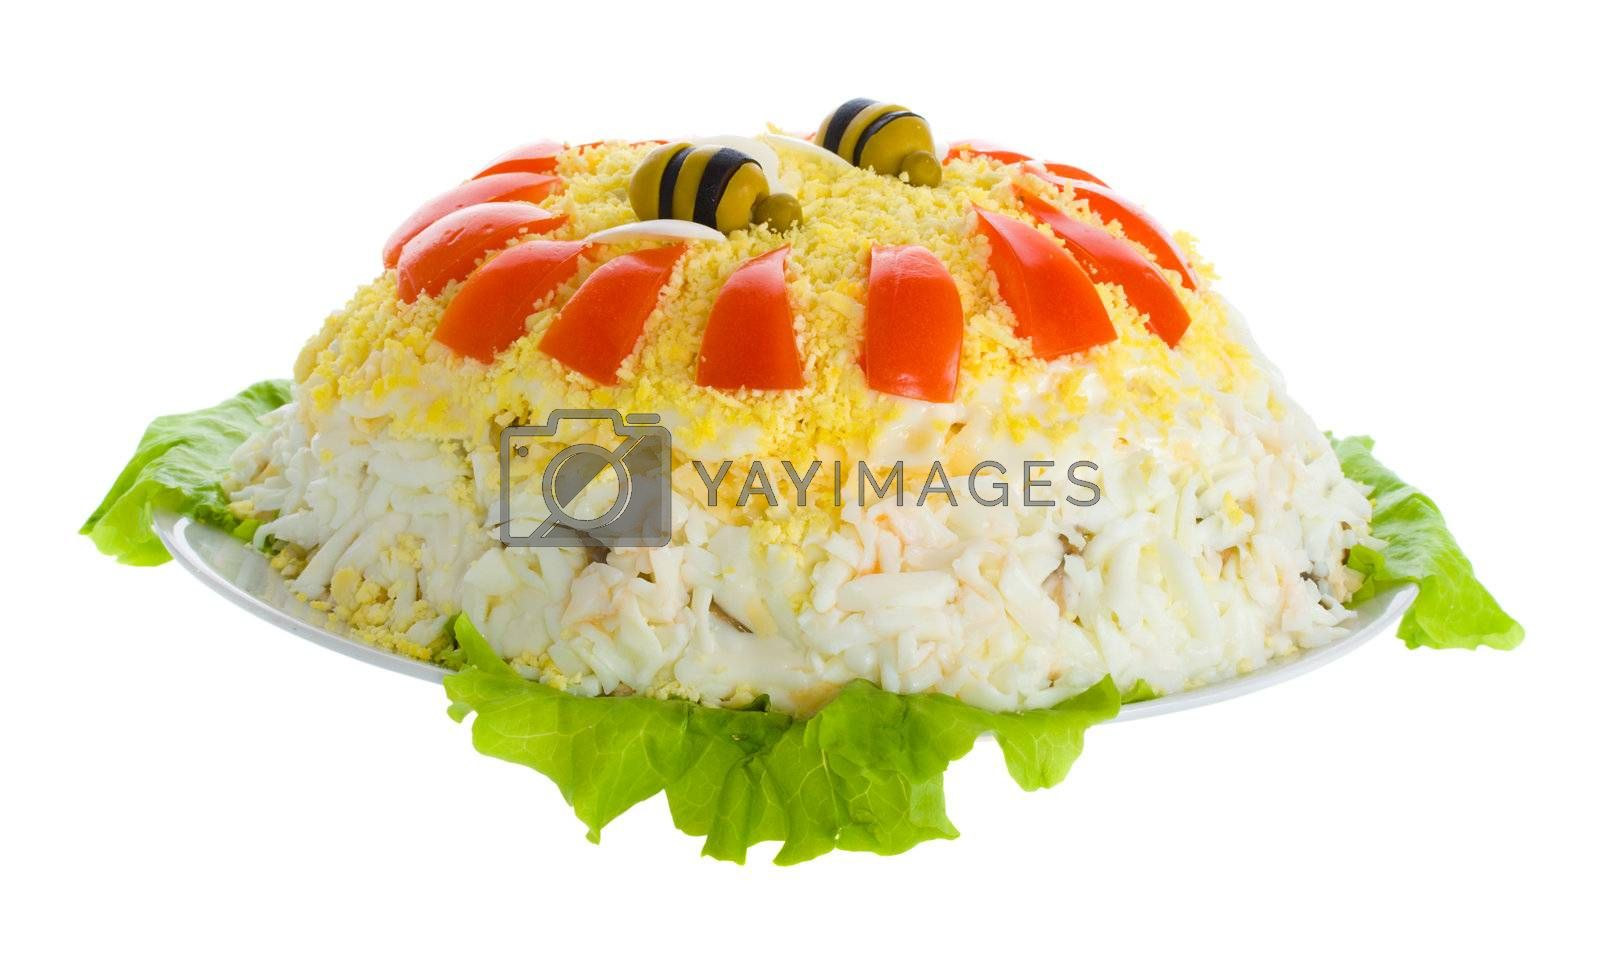 Royalty free image of close-up chicken salad by Alekcey